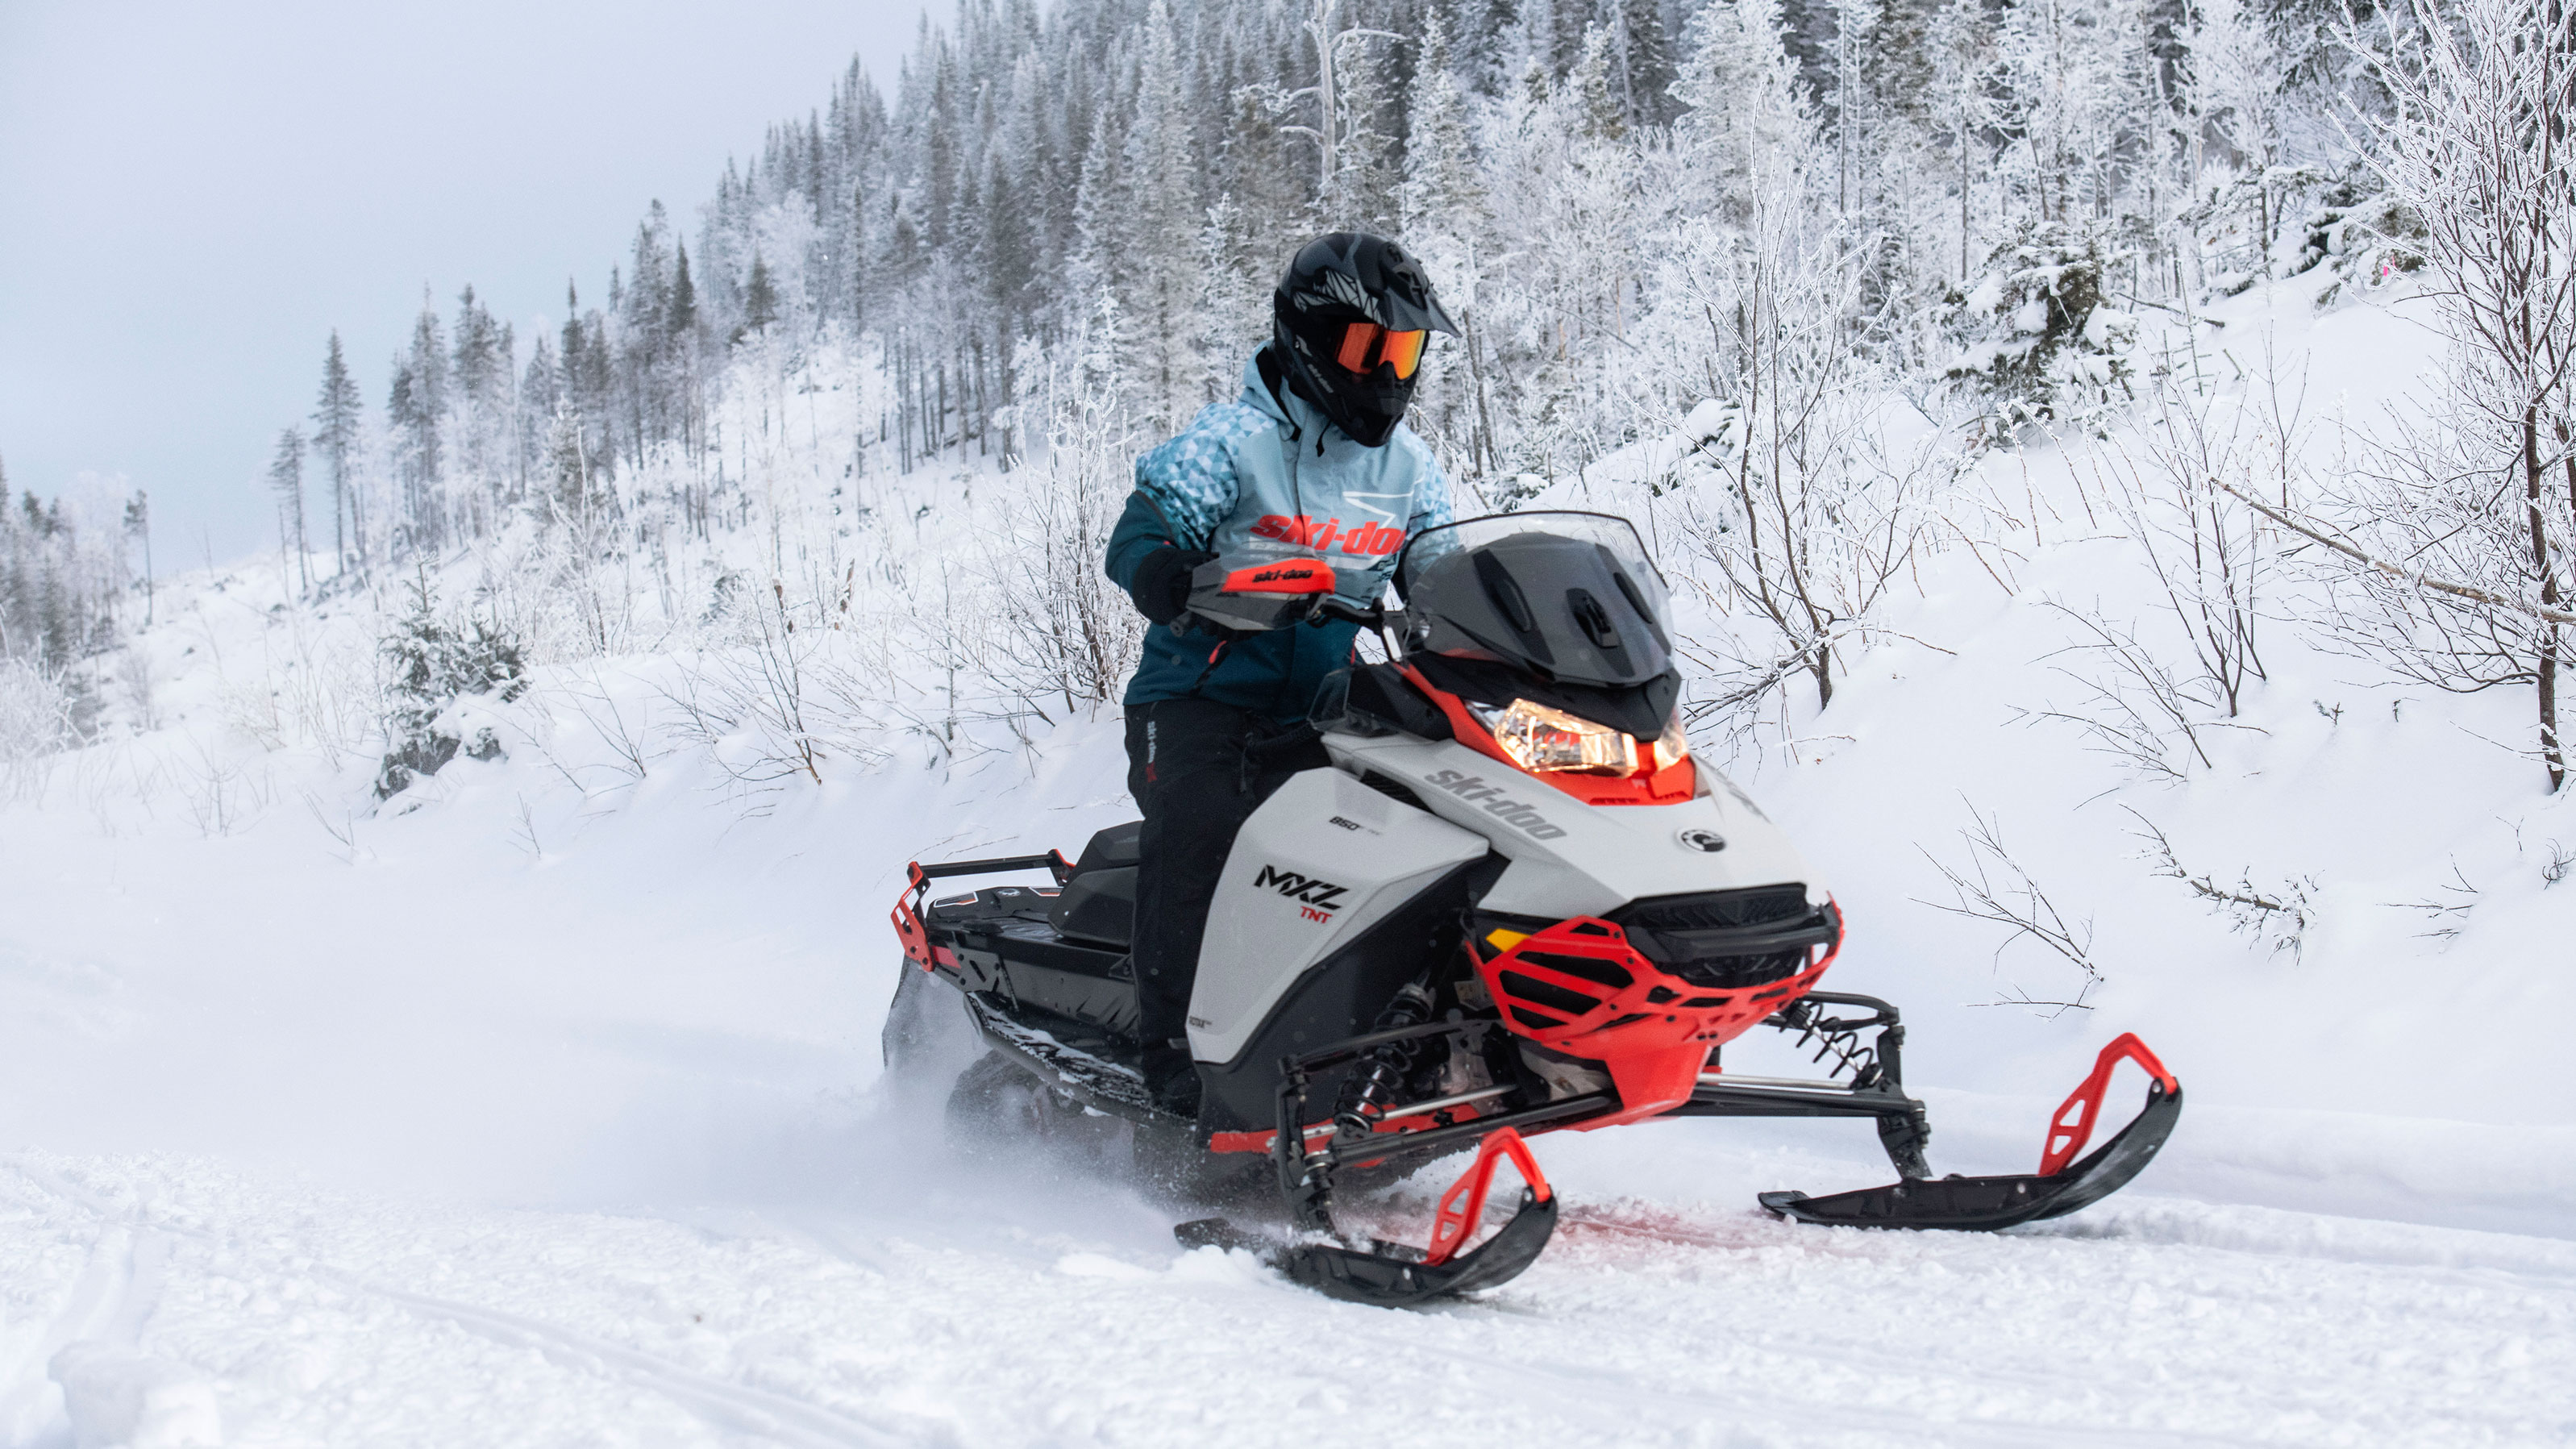 2022 Ski-Doo MXZ on a trail